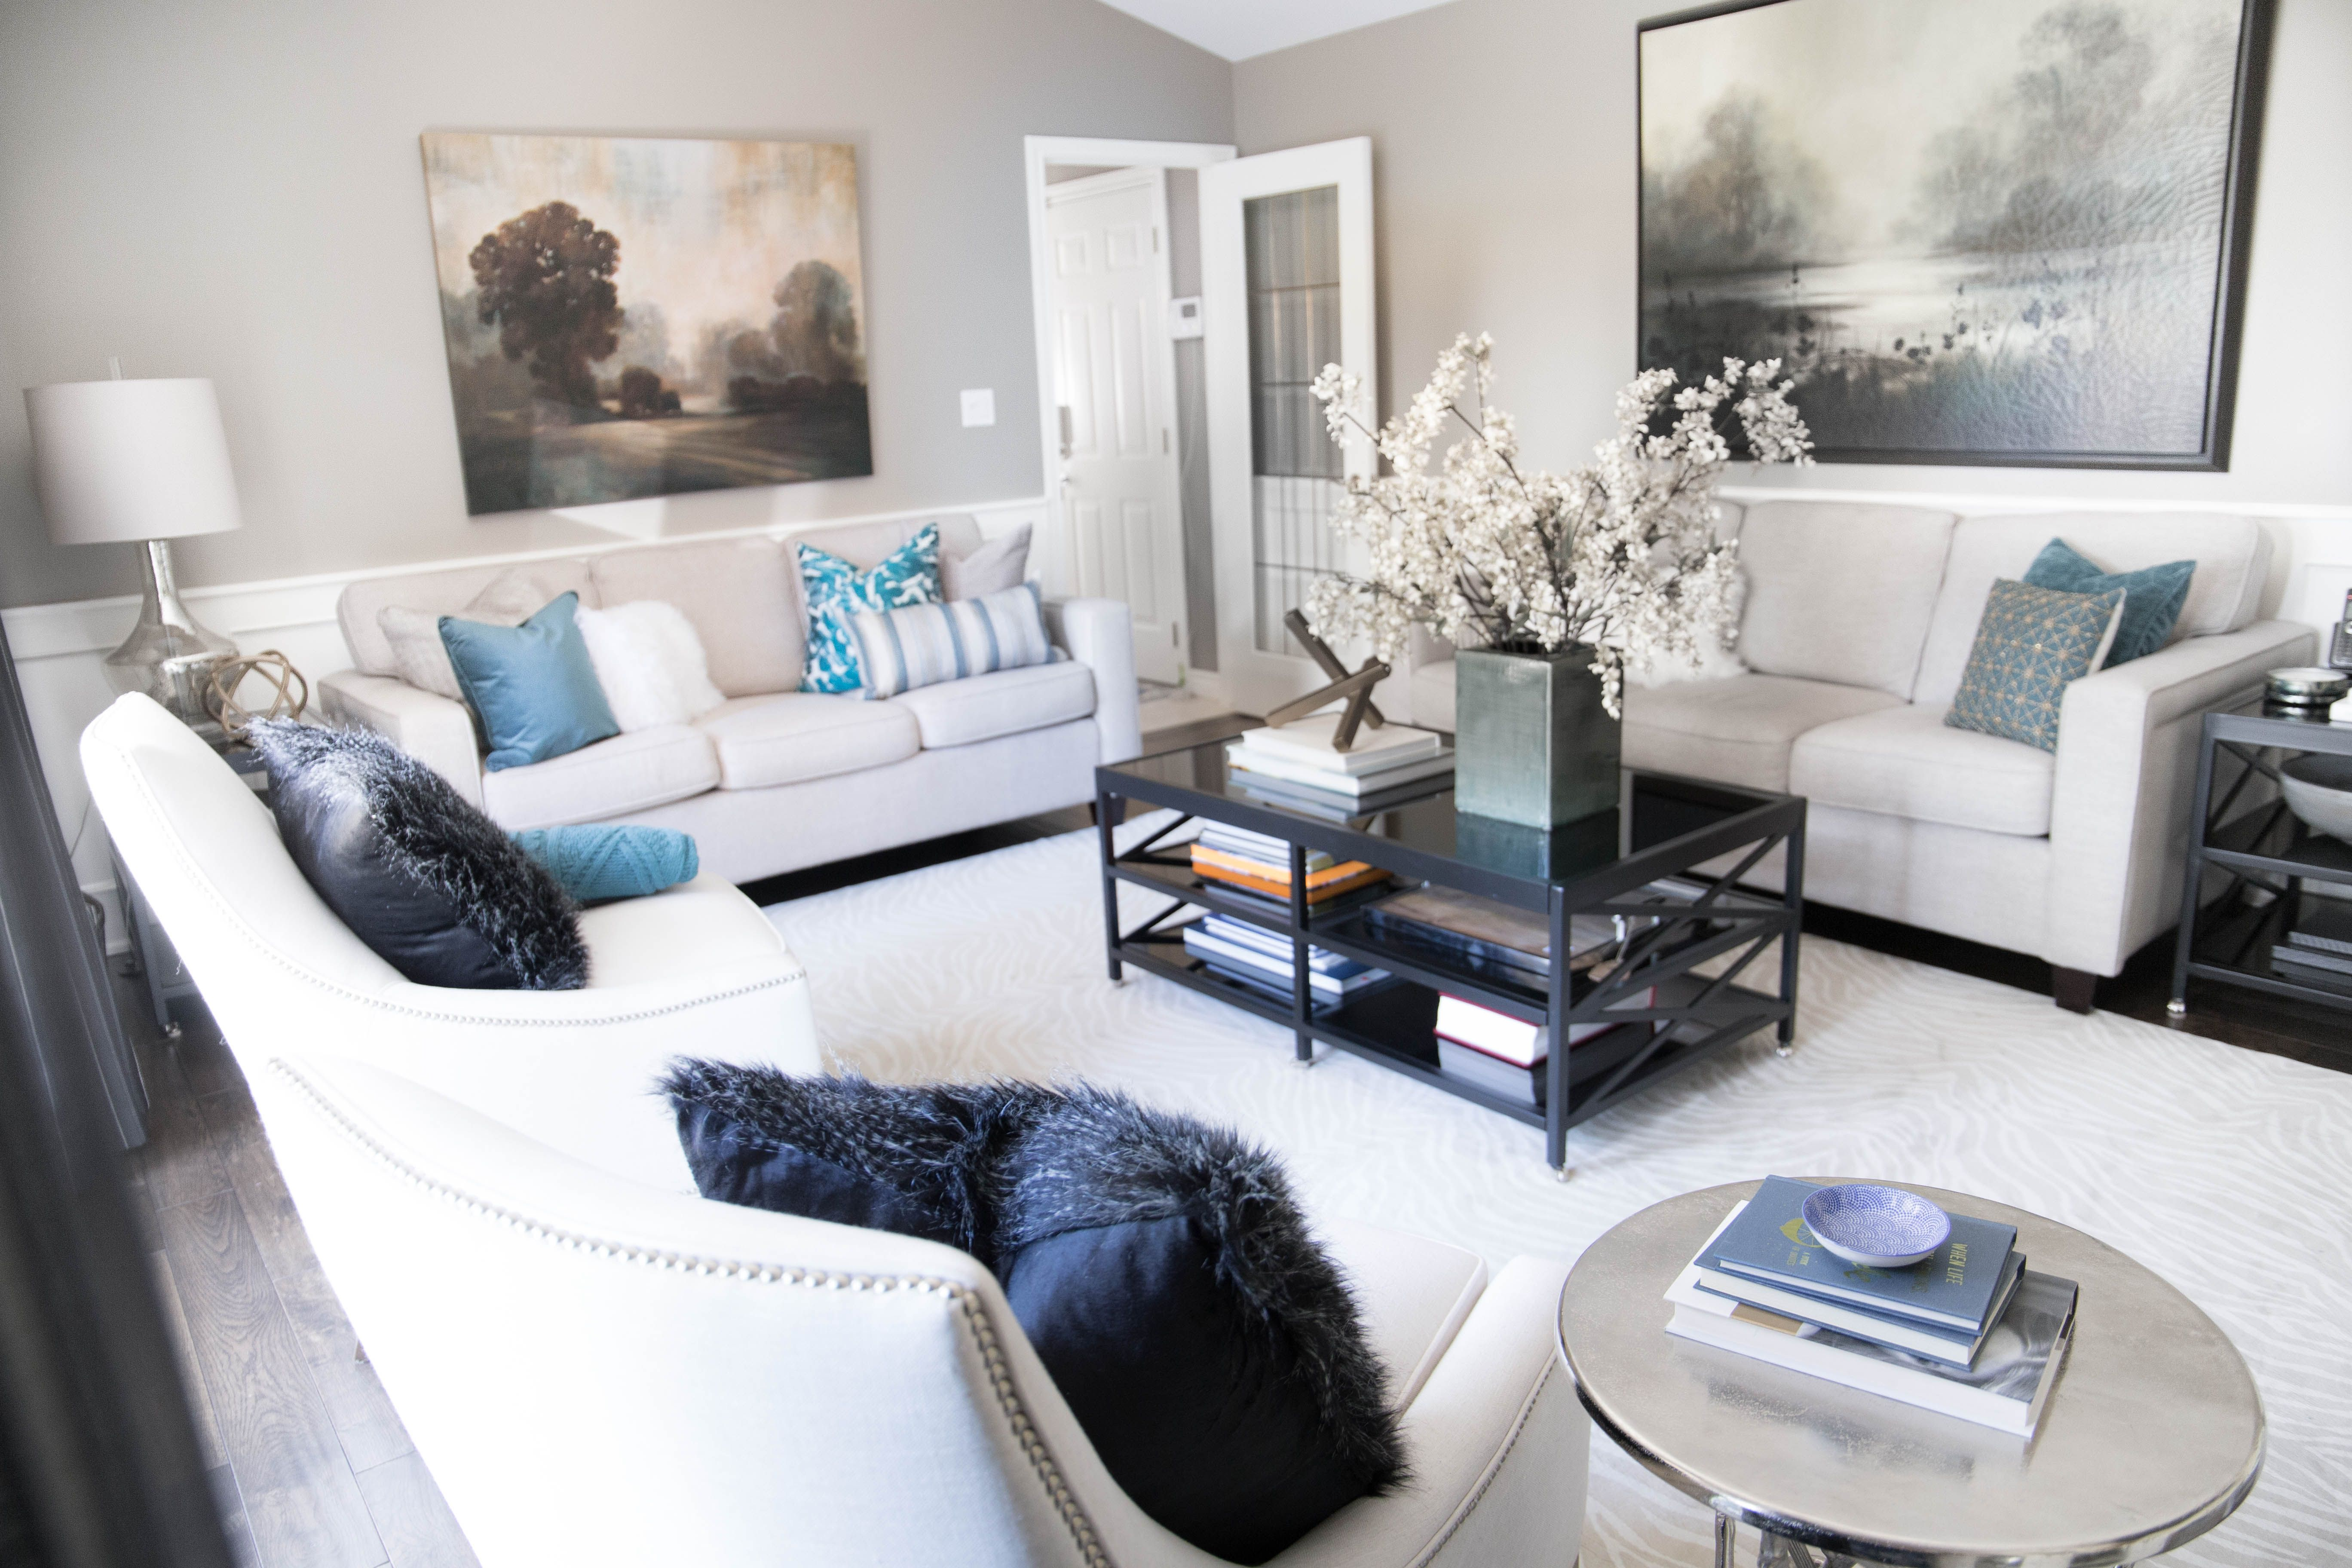 Traditional living room with teal accents. - Karin Bennett Designs ...